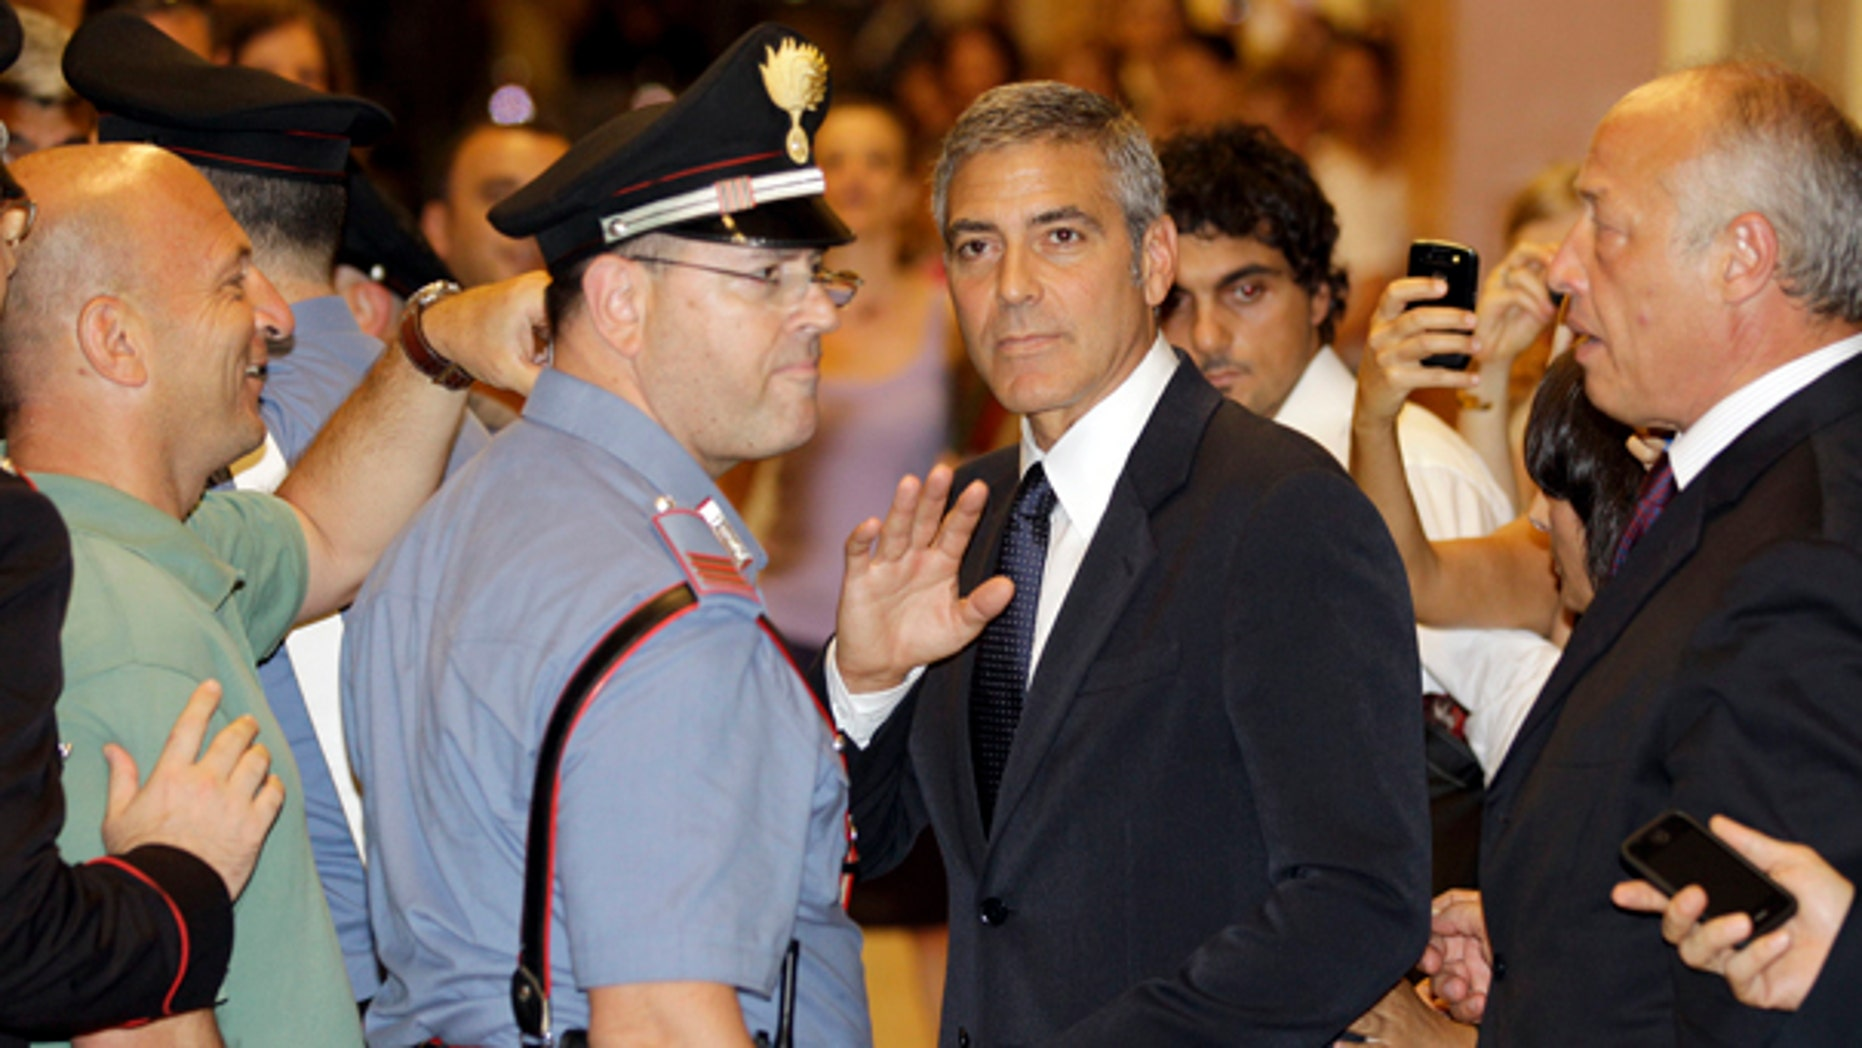 July 16: U.S. actor George Clooney leaves a tribunal in Milan, Italy.  Clooney appeared in court as a witness in a fraud trial against defendants charged with co opting his name for a line of clothing. (AP)